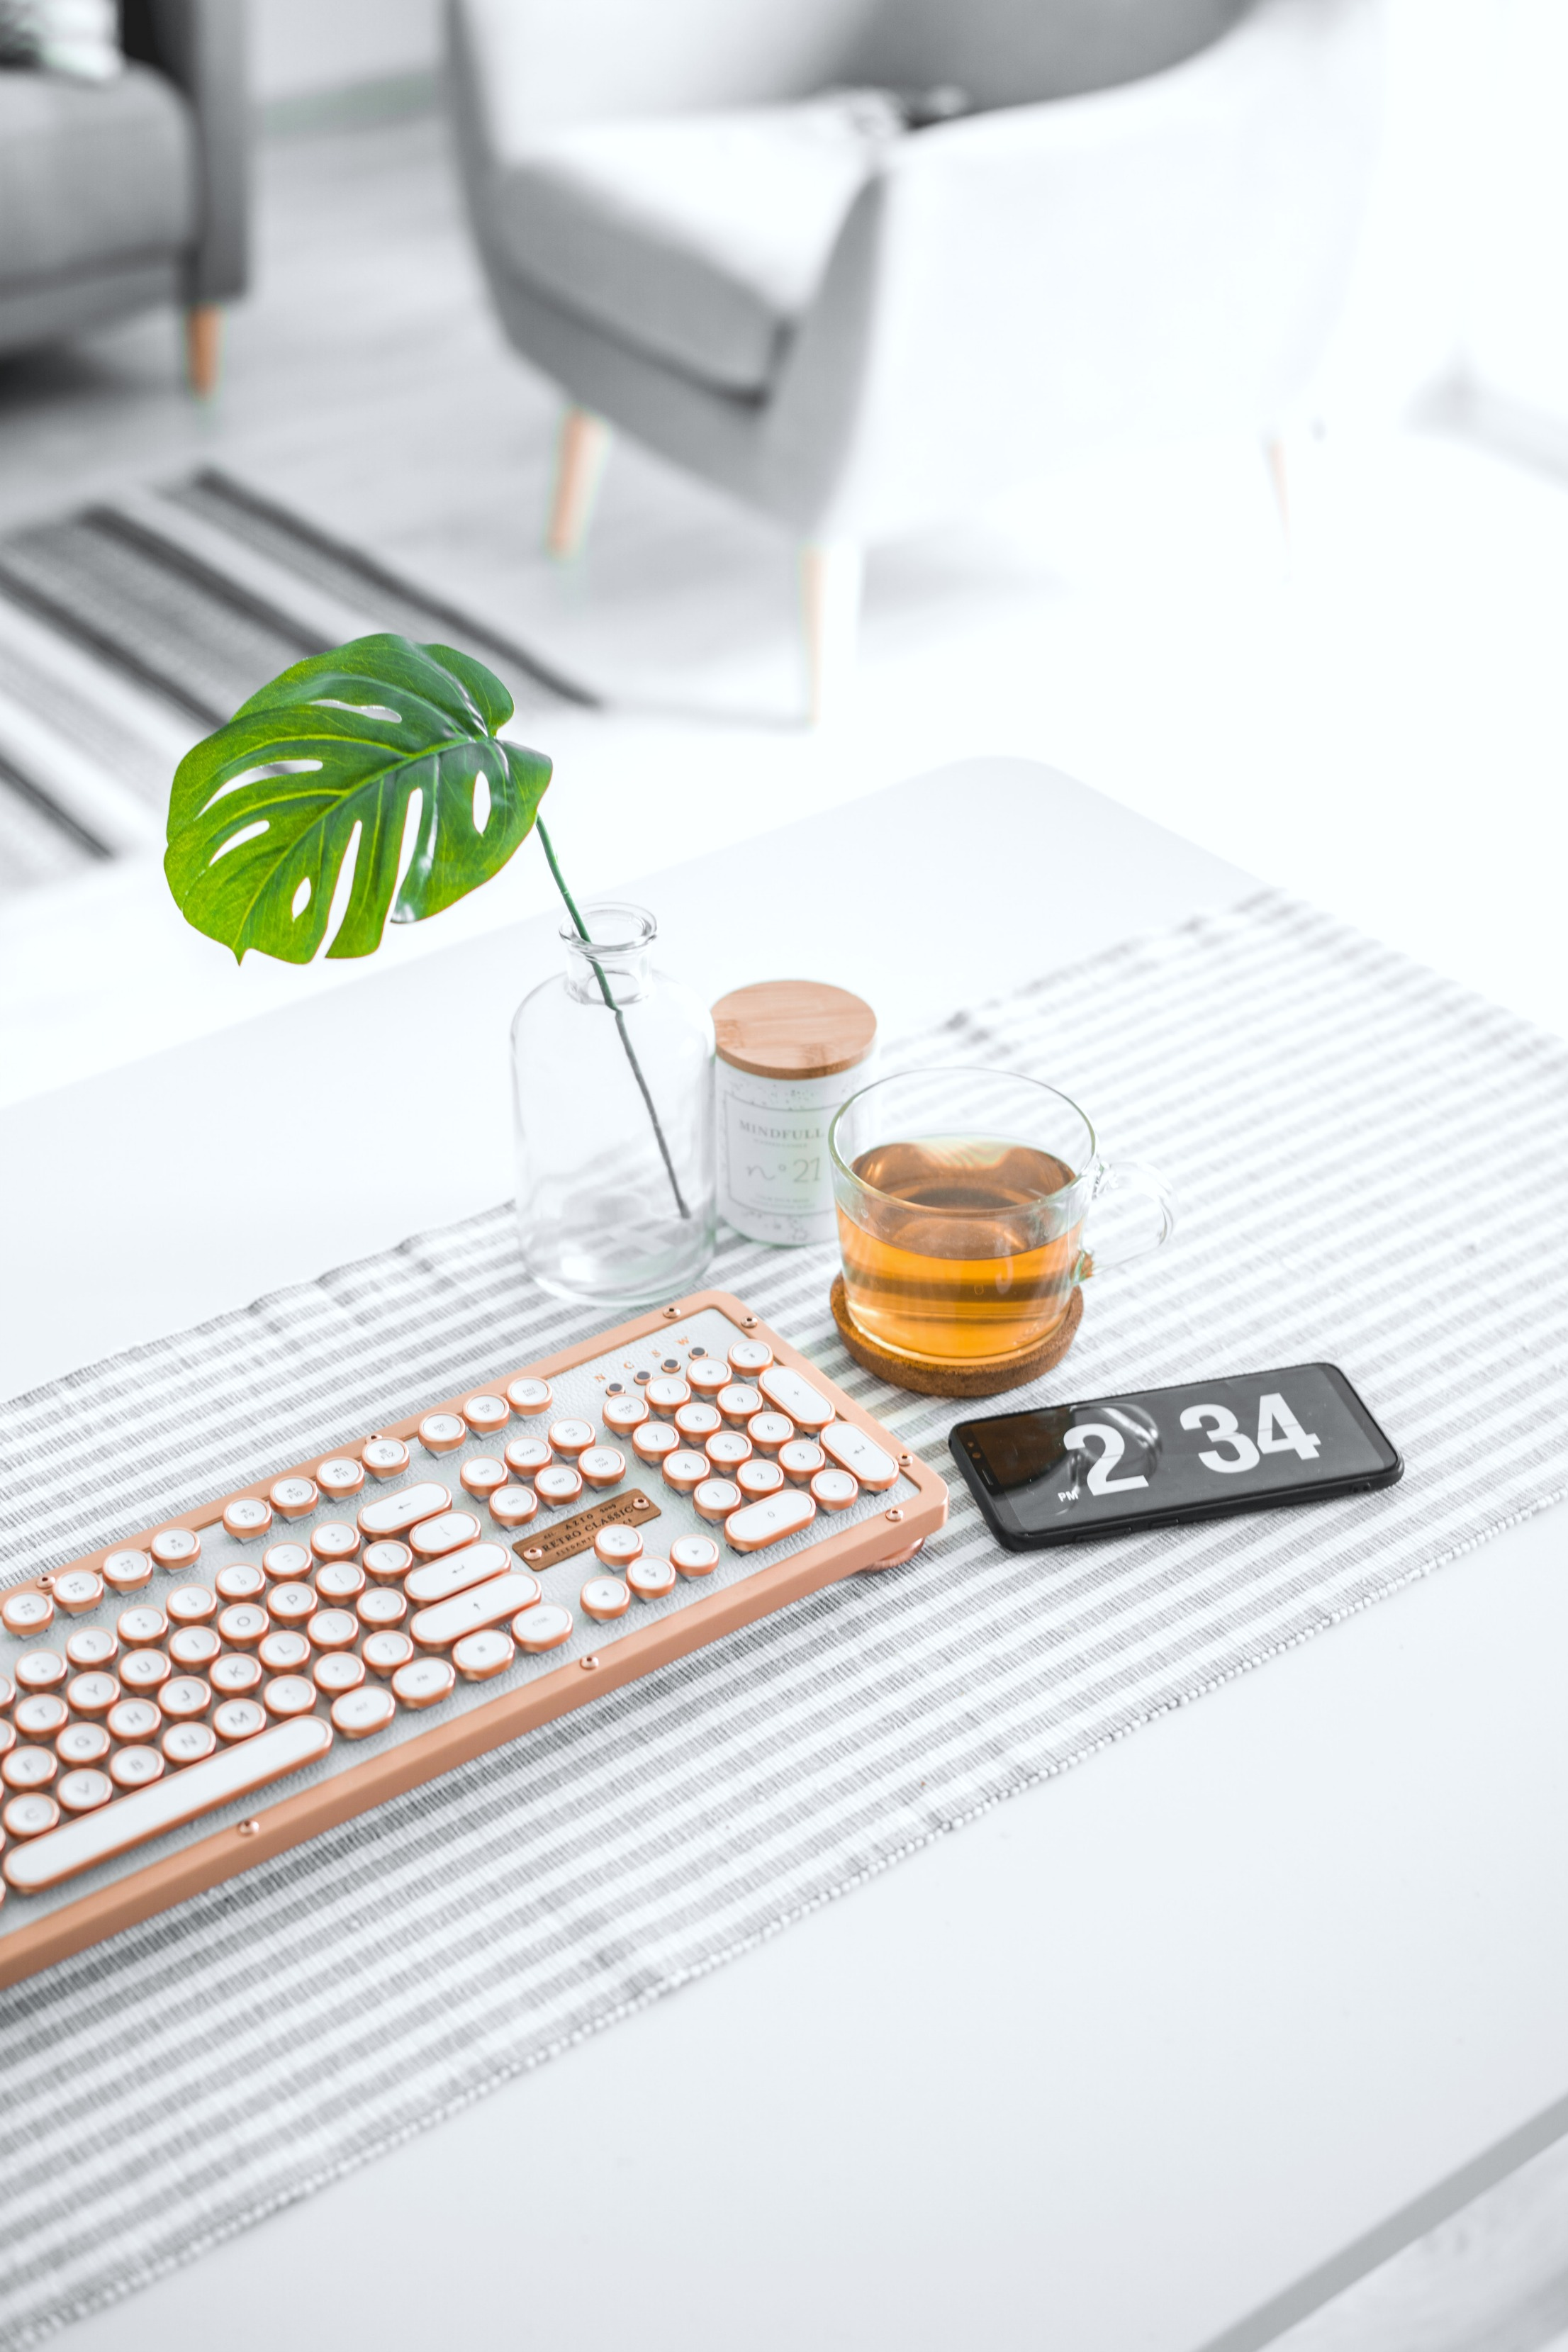 A desk with a plant, a cup of tea, keyboard, and phone are seen. A living room is in the background.